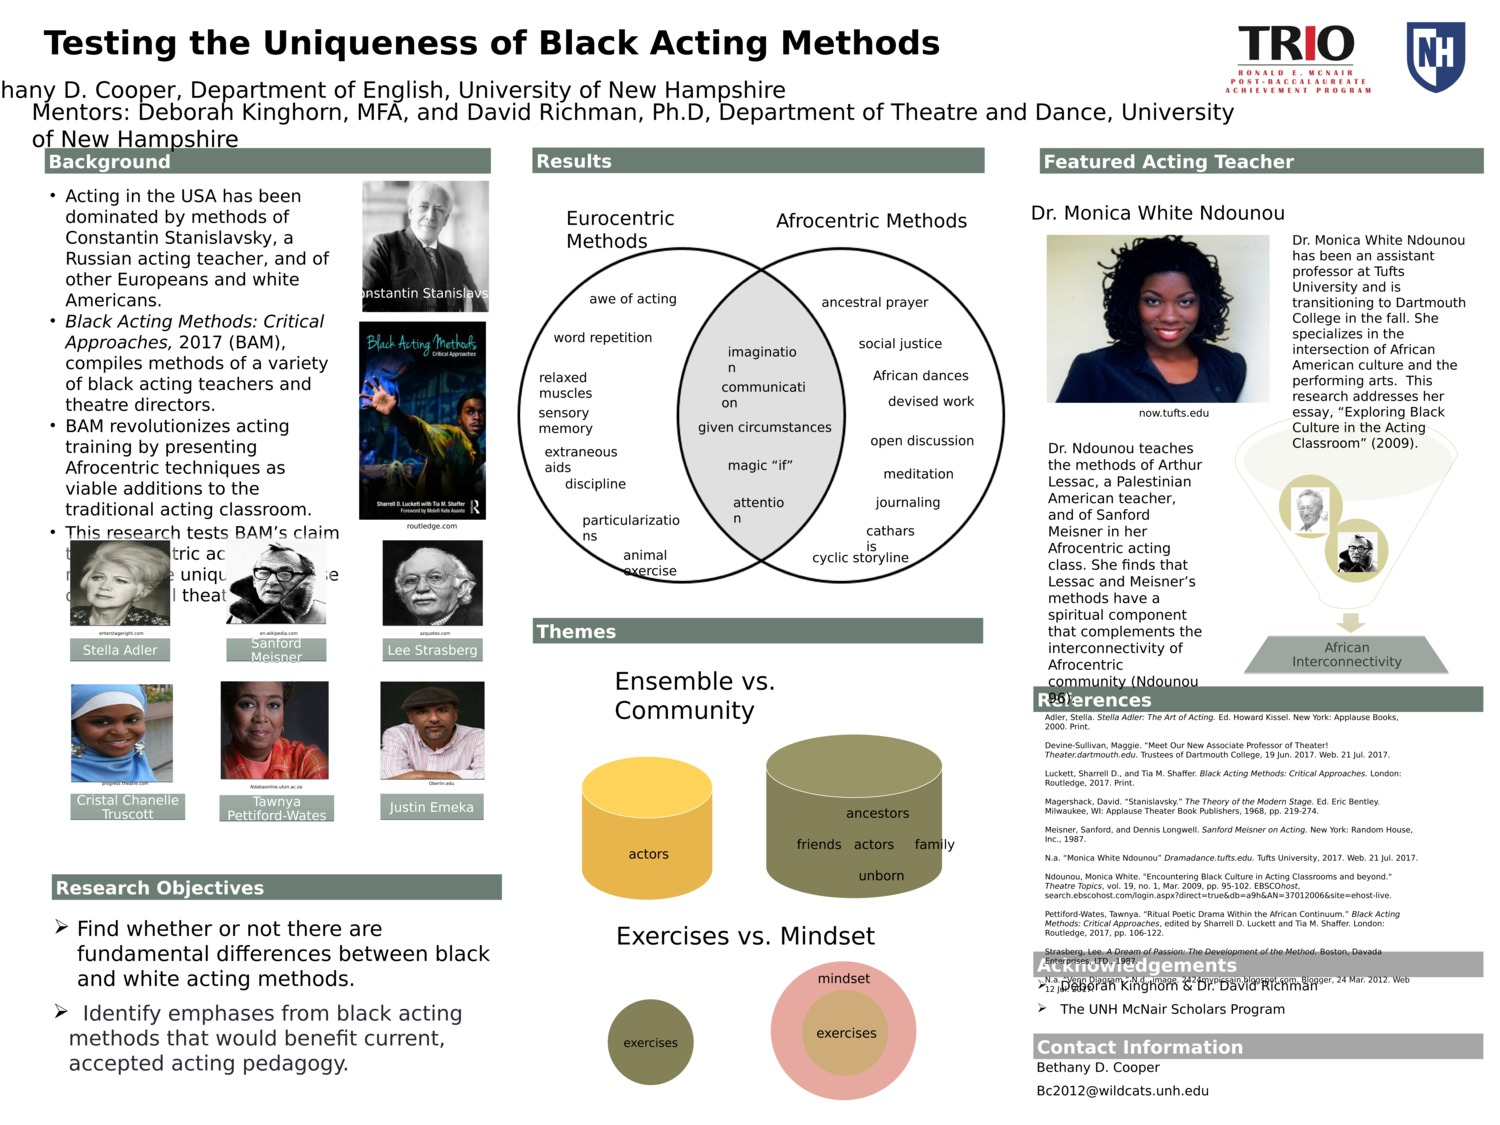 Testing The Uniqueness Of Black Acting Methods by bc2012